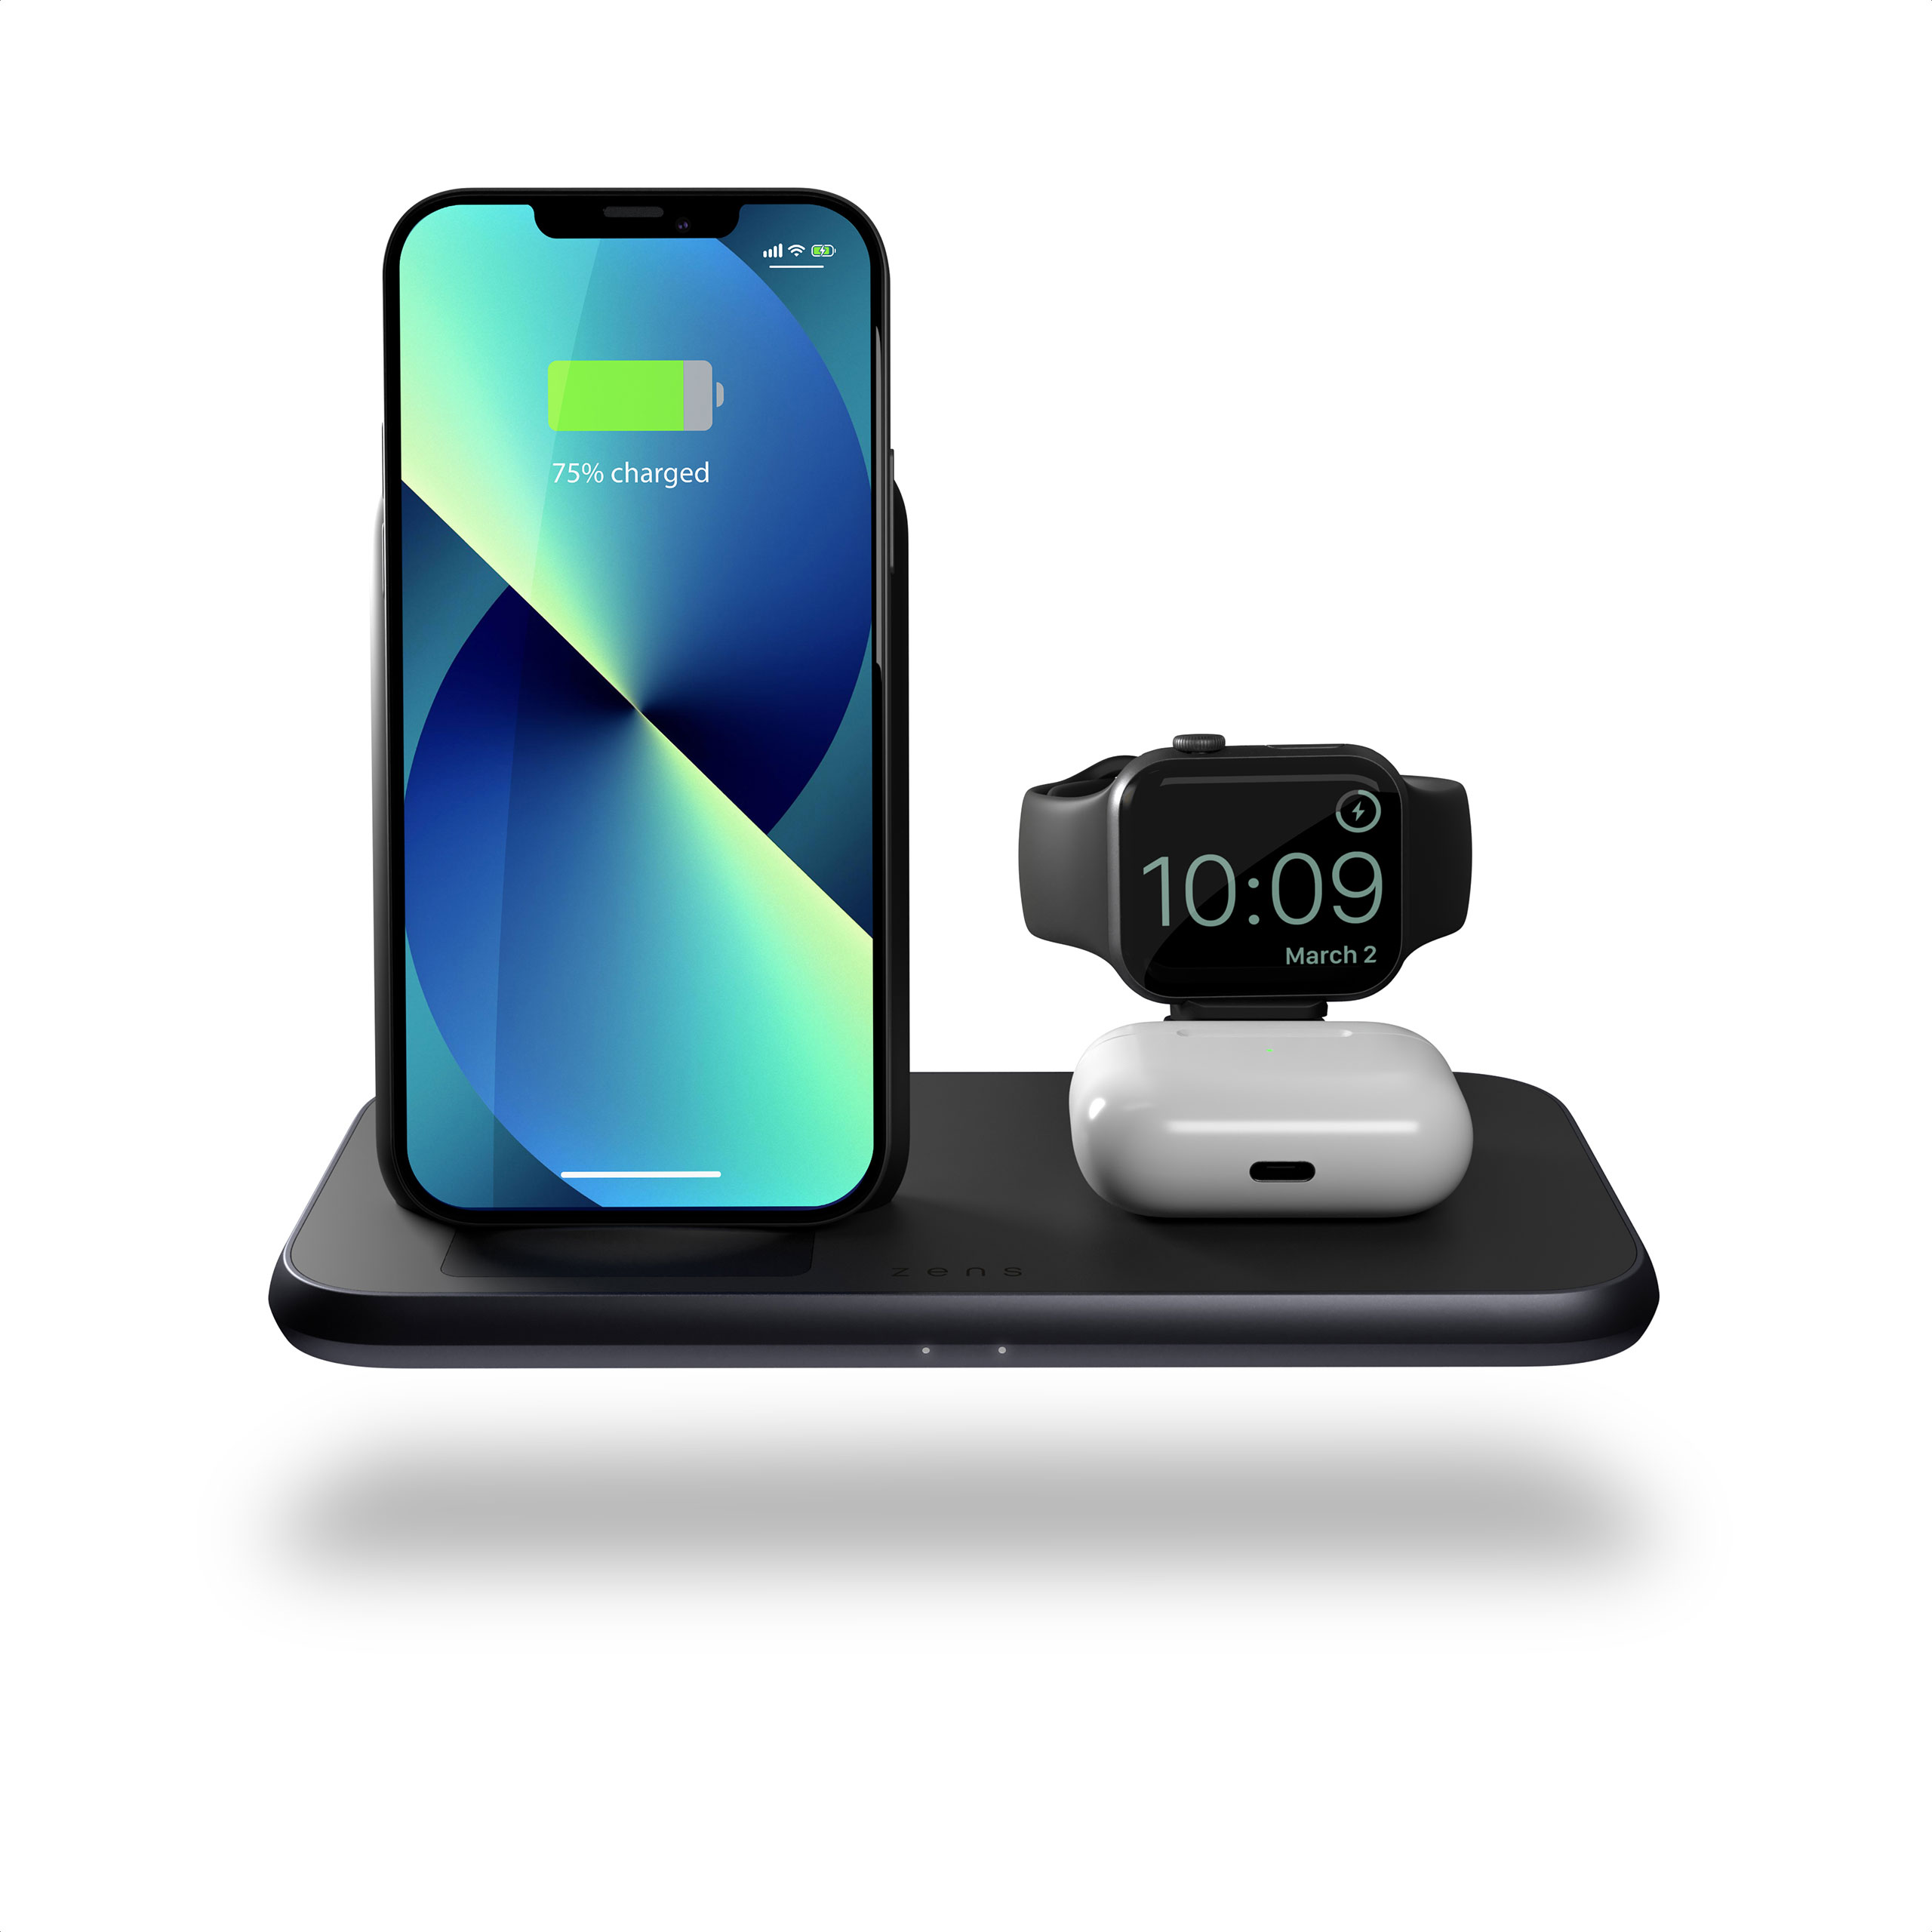 ZEDC15B - 4 in 1 Stand+Watch Wireless Charger Aluminium Front View with iPhone 13